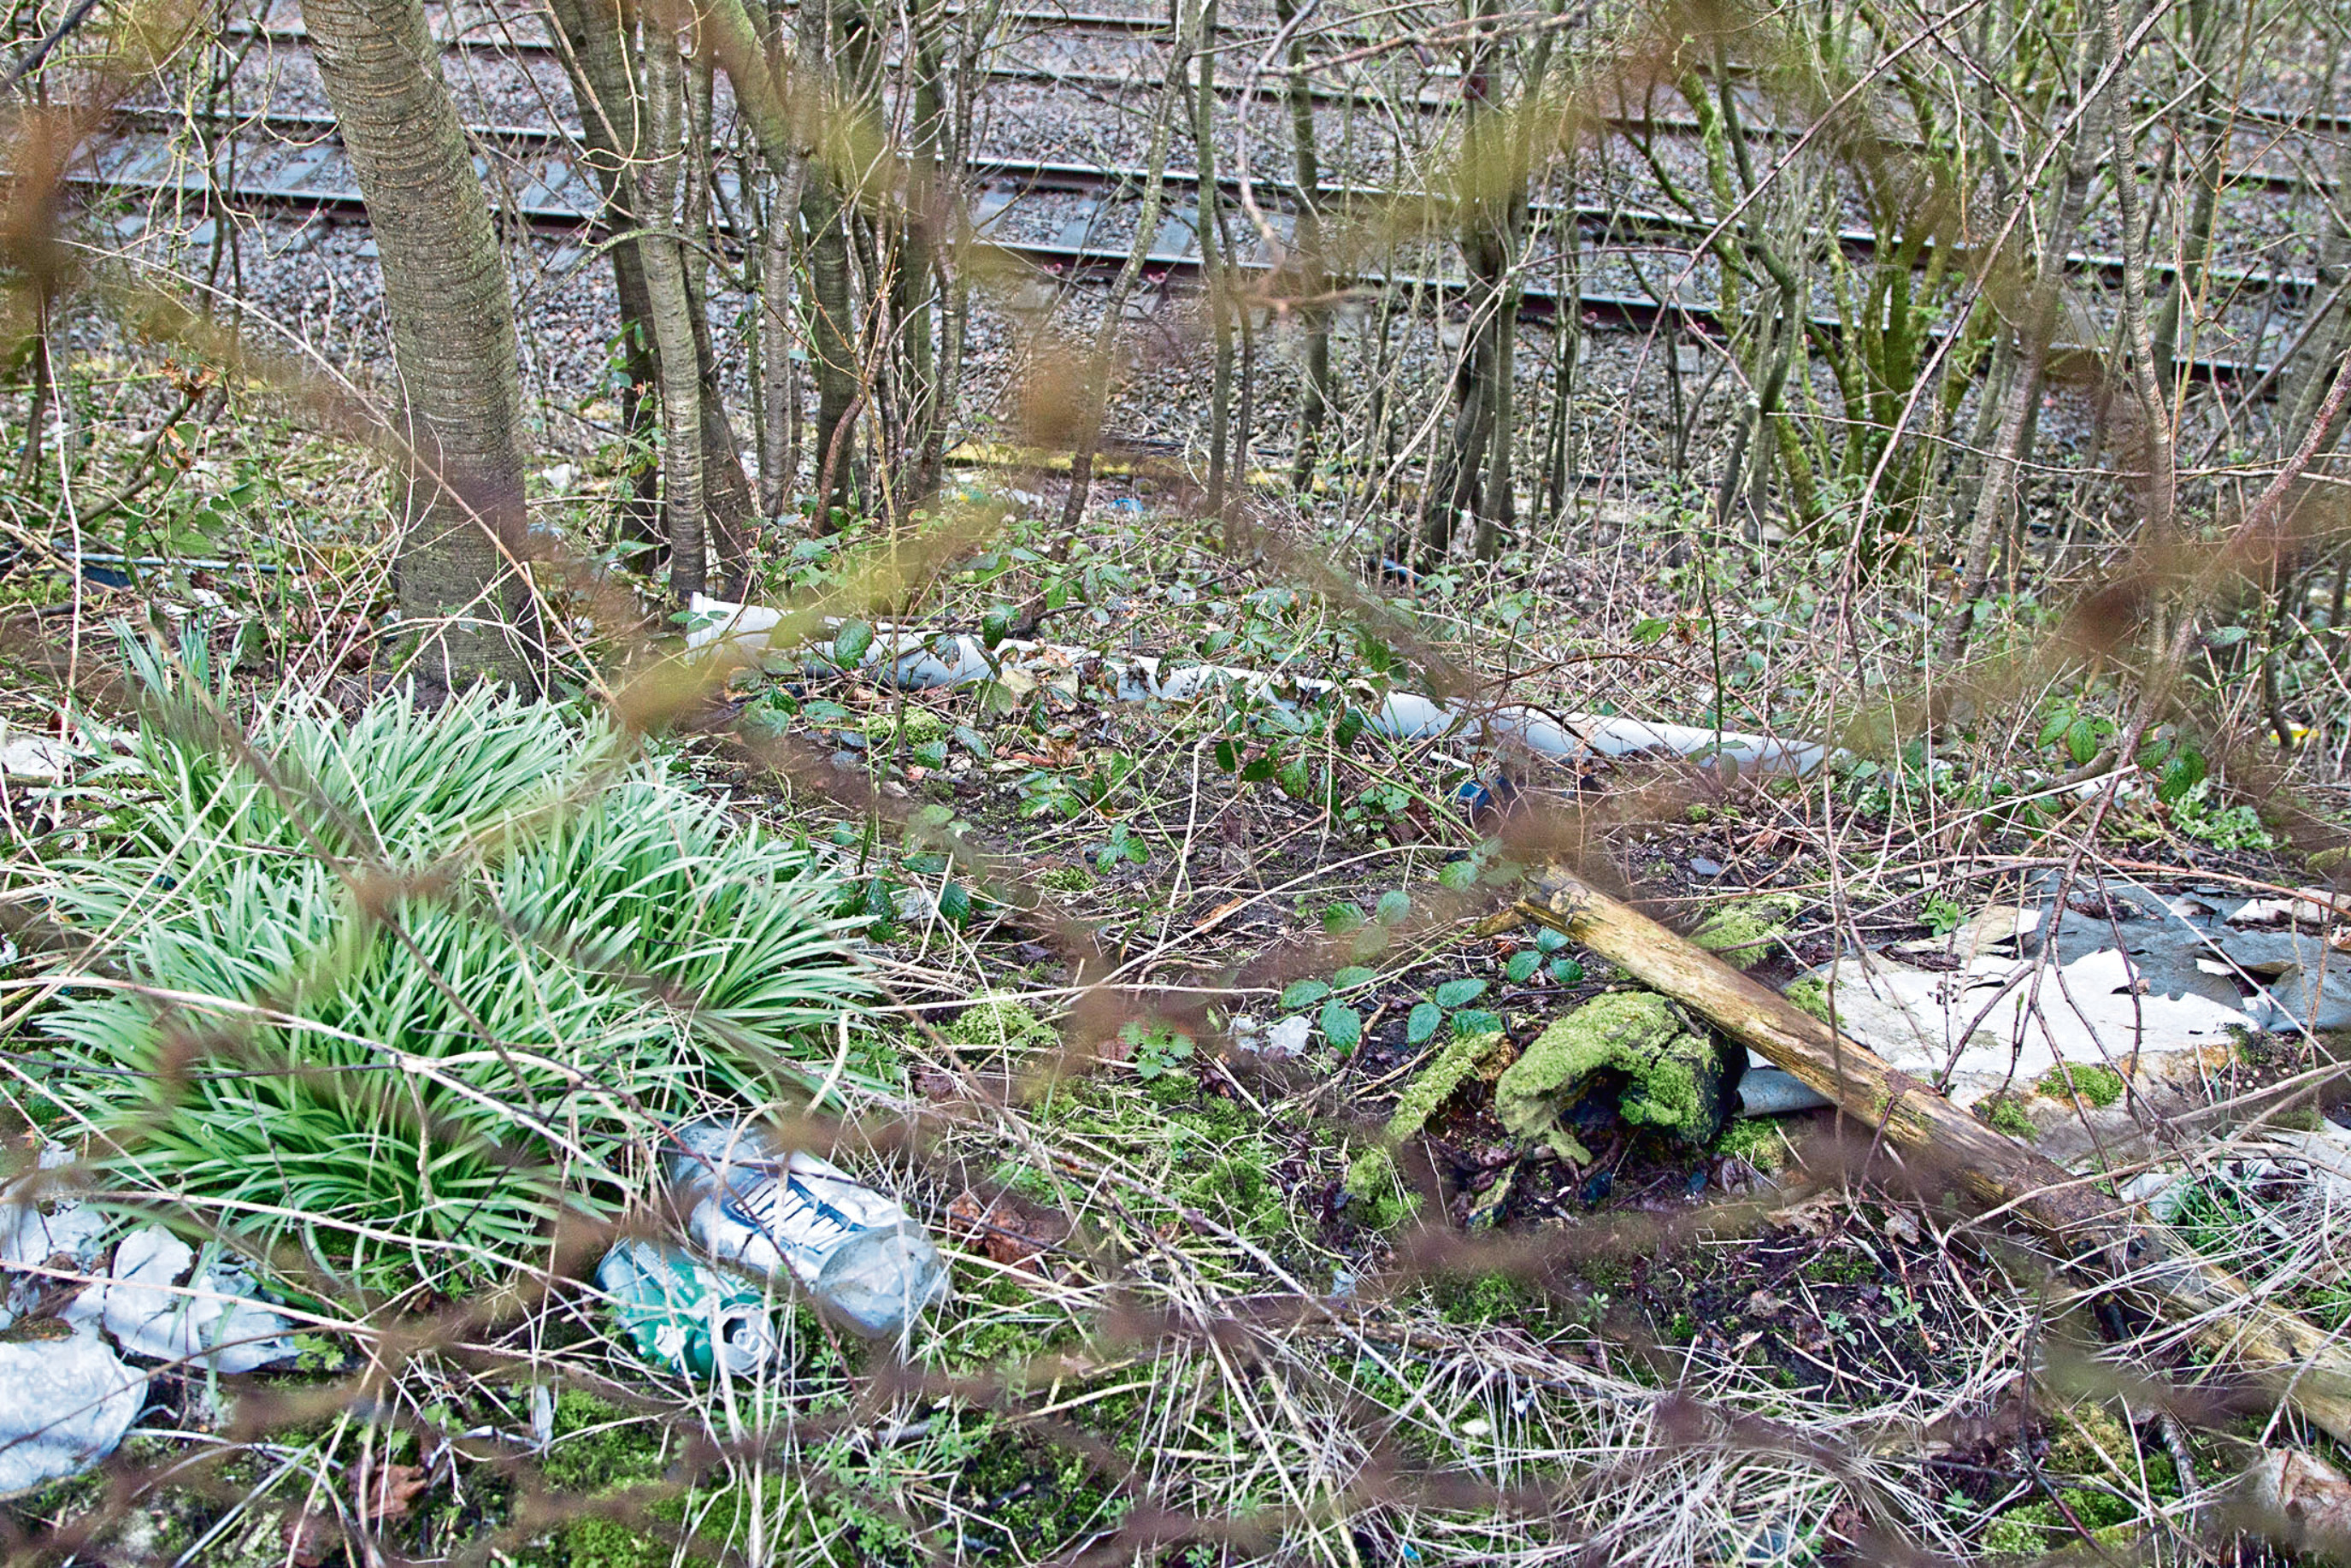 Discarded rubbish plagues many of our hedgerows and roadside verges.